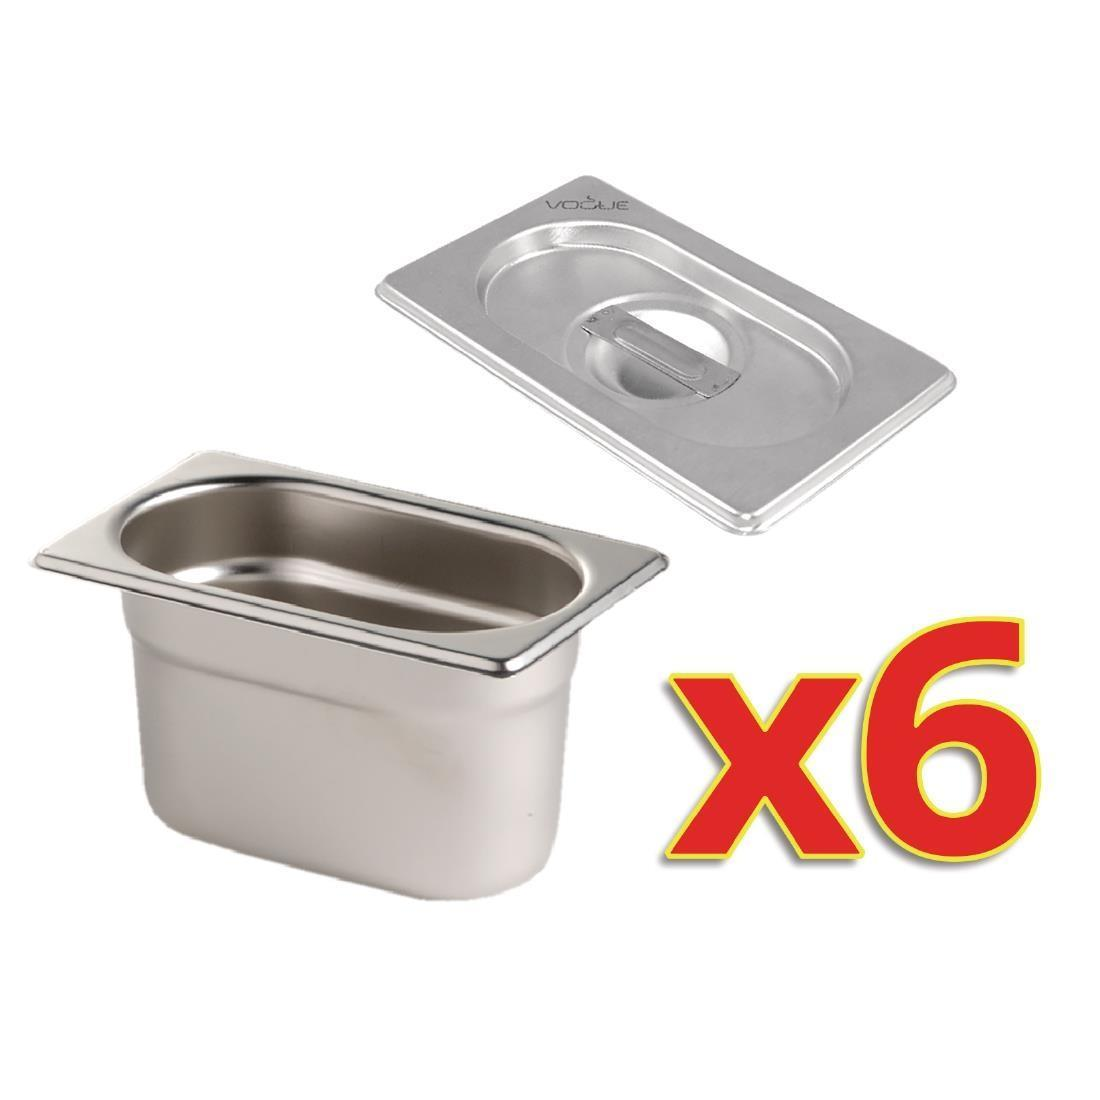 Vogue Gastronorm Pan Set with Lids 6 x 1/9 - S430